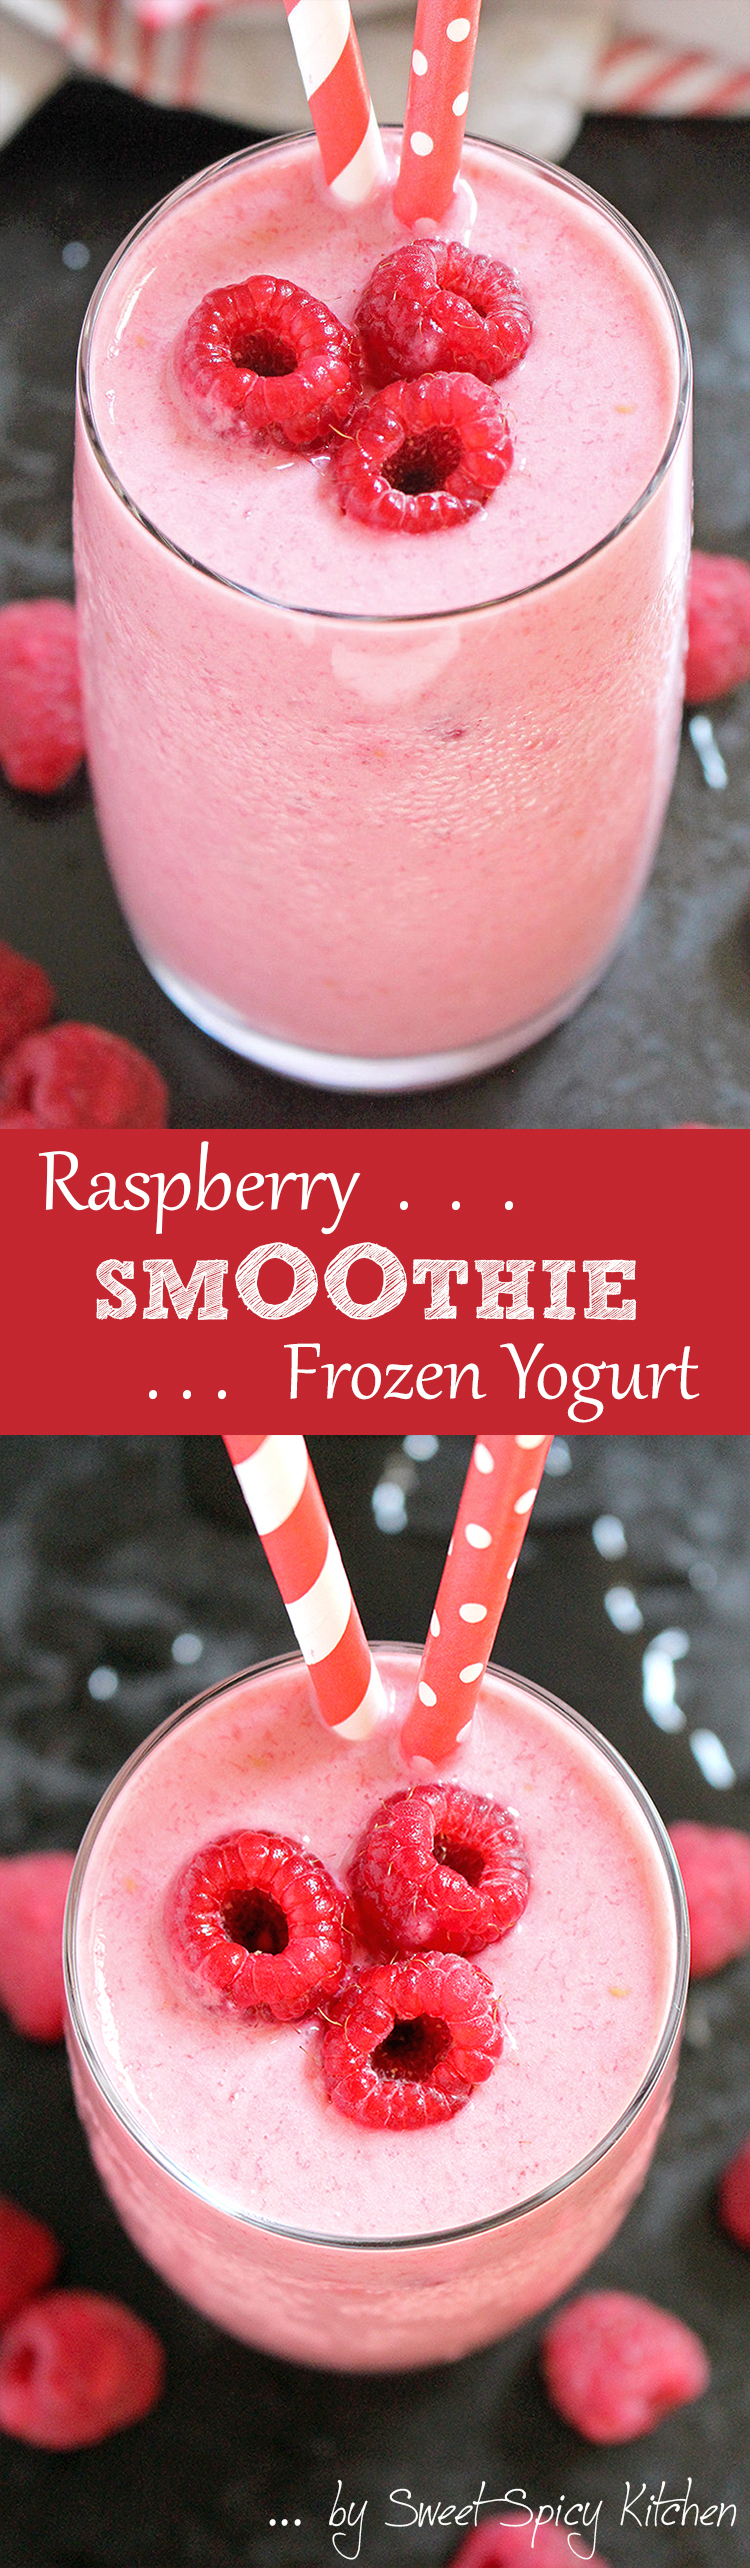 Untitled-1 Raspberry Frozen Yogurt Smoothie